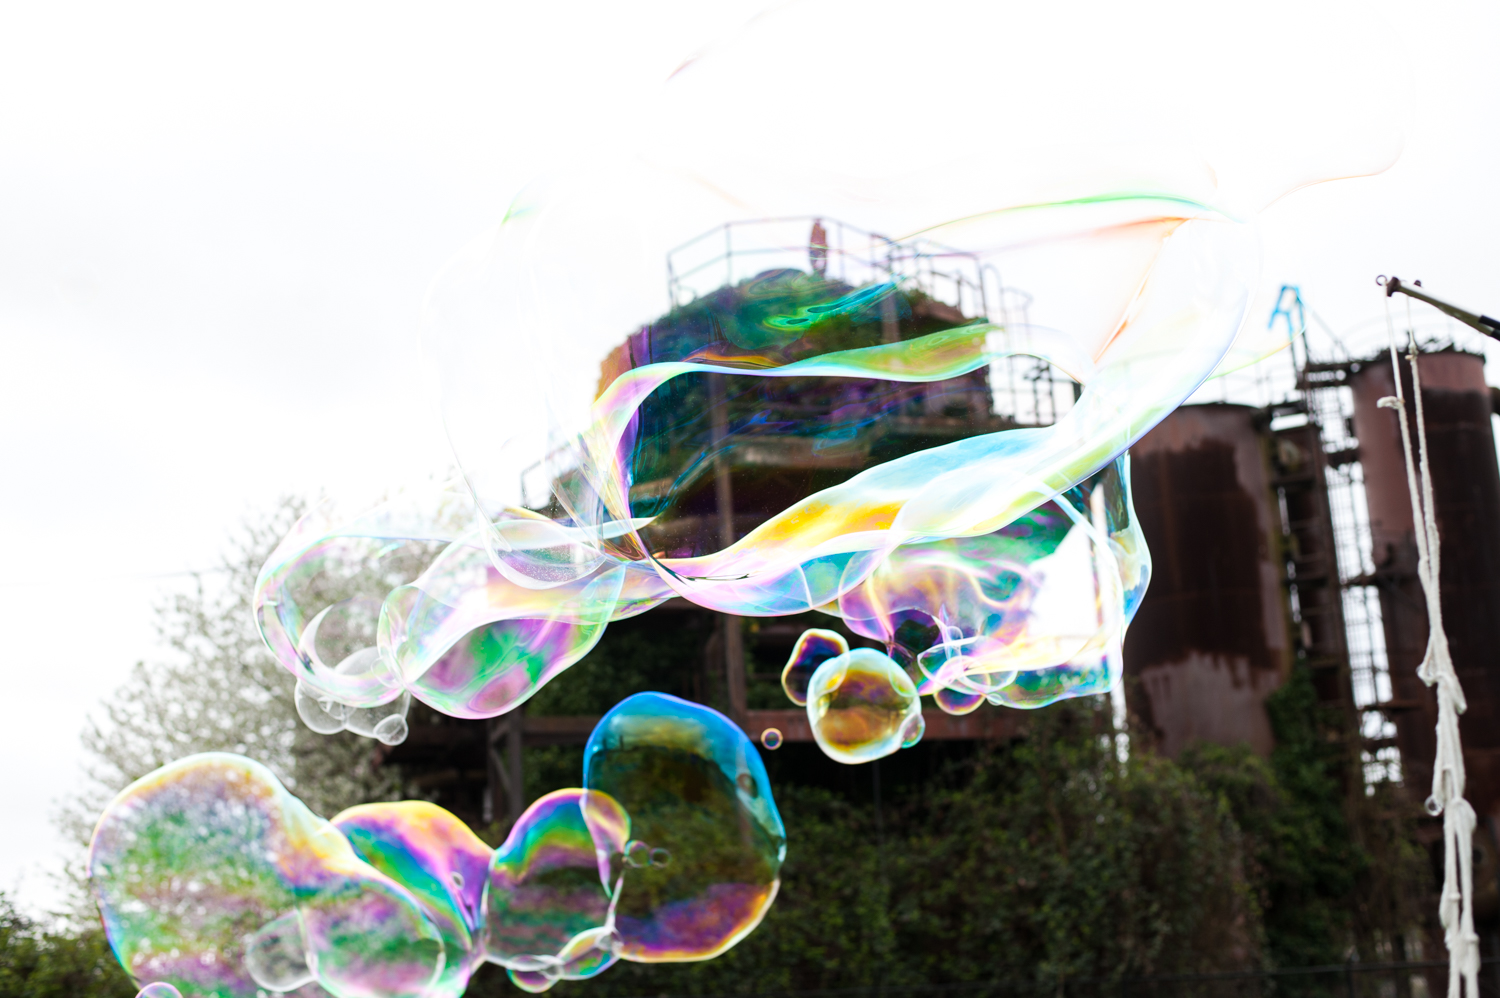 After a false start due to weather on April 13, Bubblemancers regrouped for their first annual NW Bubble Gathering at Gasworks Park on April 14. The enormous soap bubbles cast were completely out of this world! (Image: Elizabeth Crook / Seattle Refined)